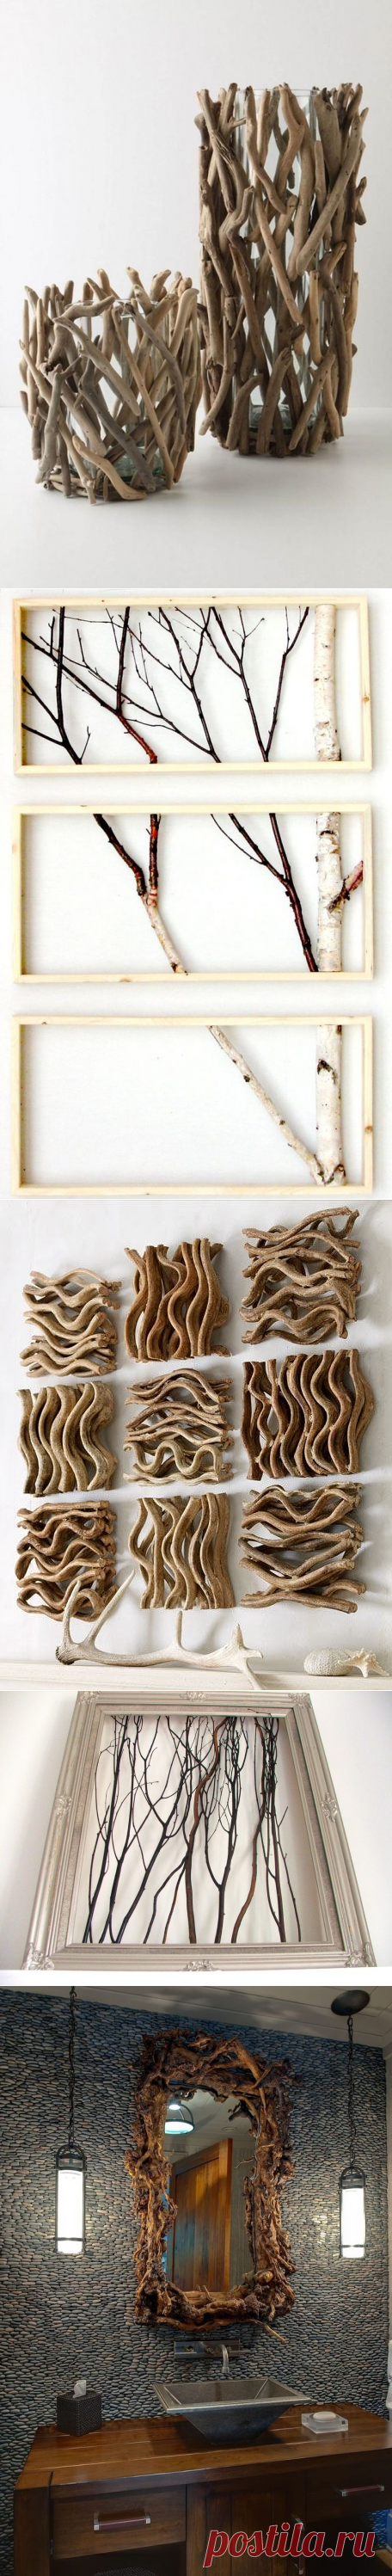 10 simple ideas of a decor from branches